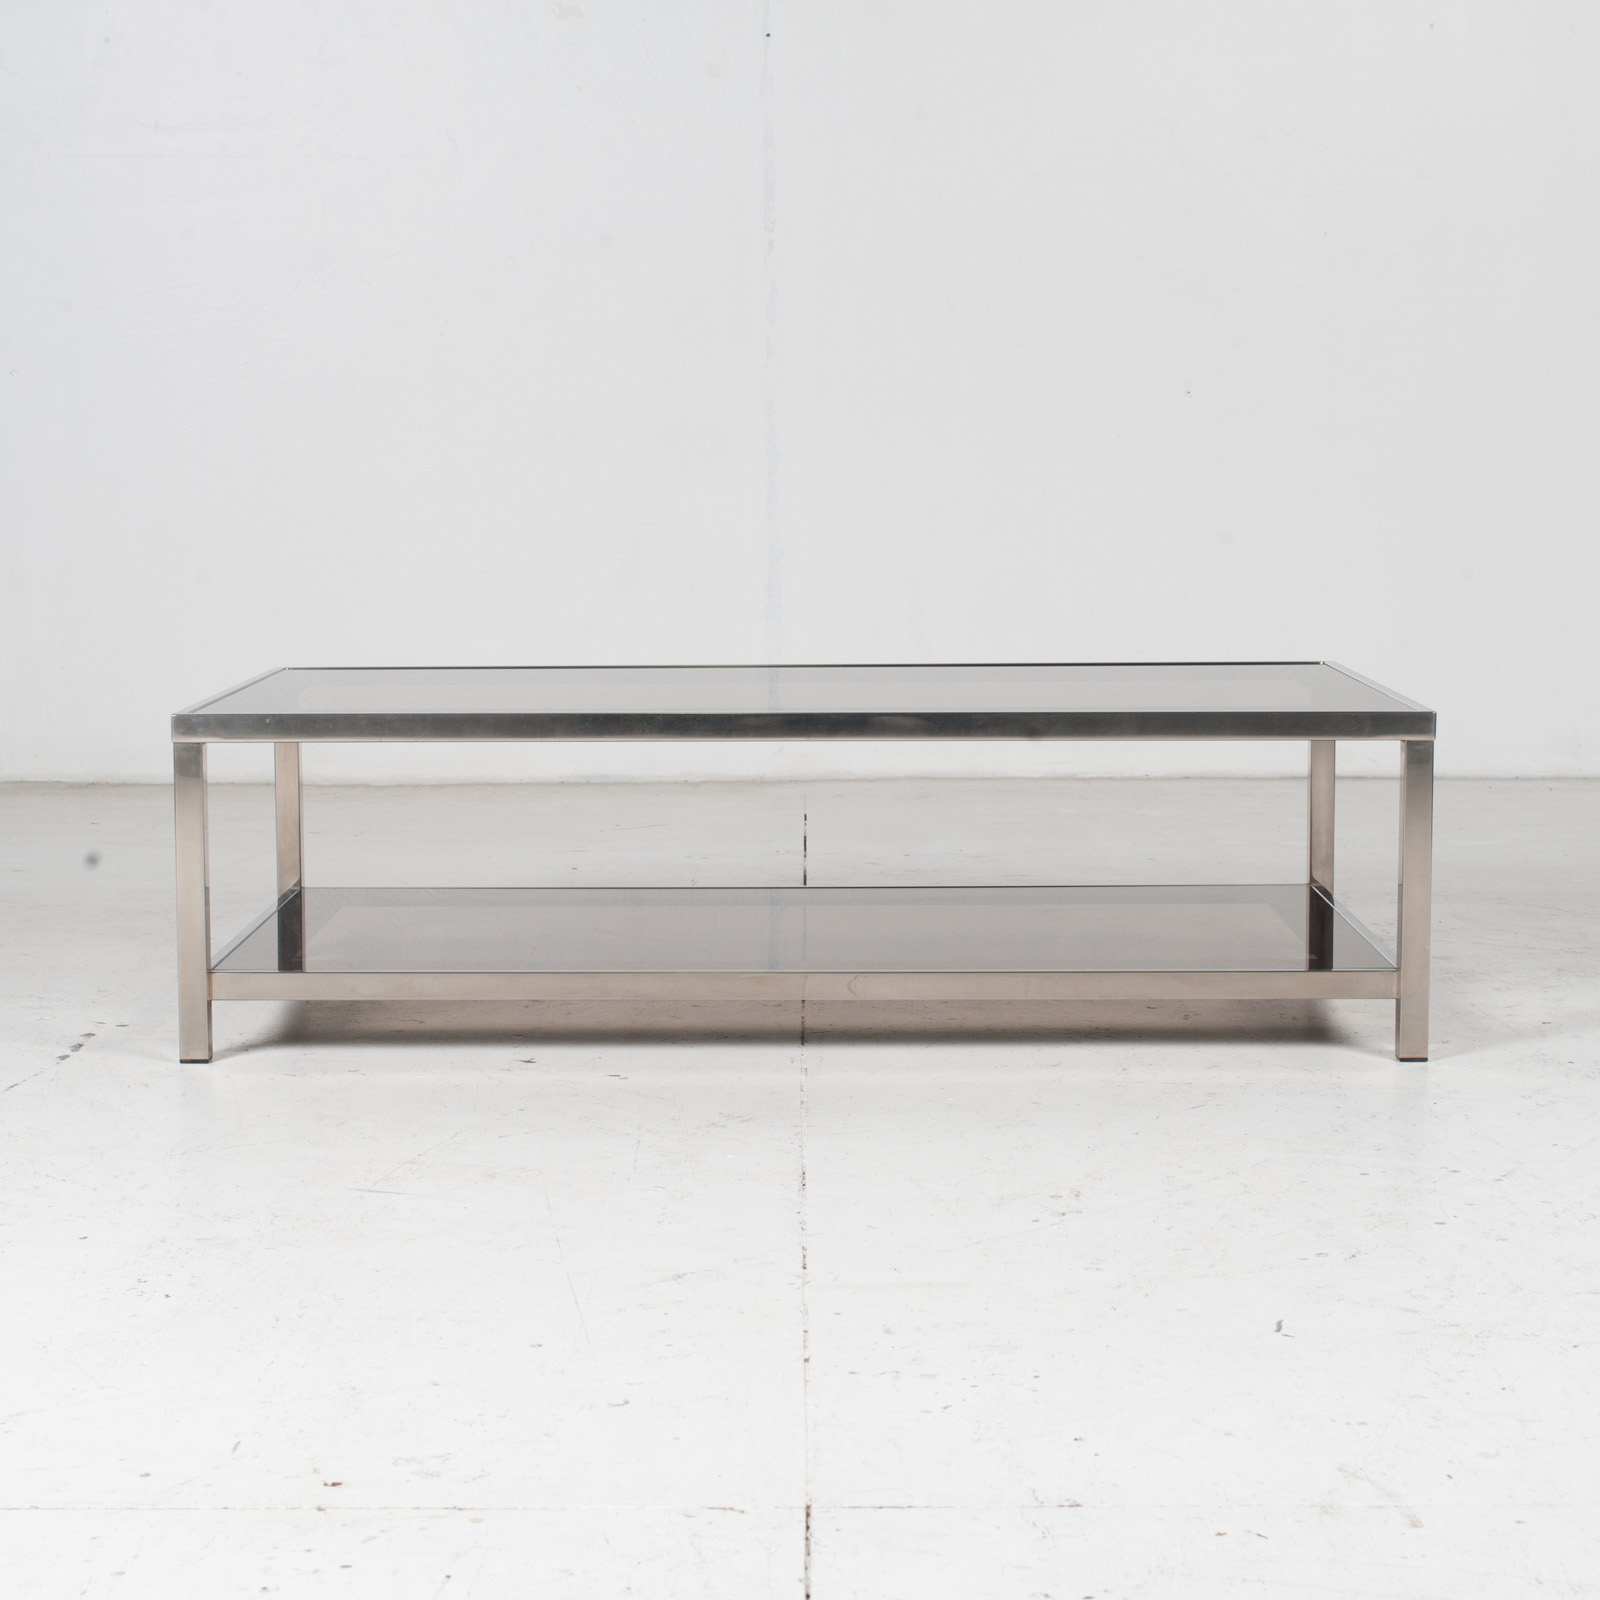 Coffee Table By Belgo Chrome In Smoked Glass, 1970s, Belgium 1